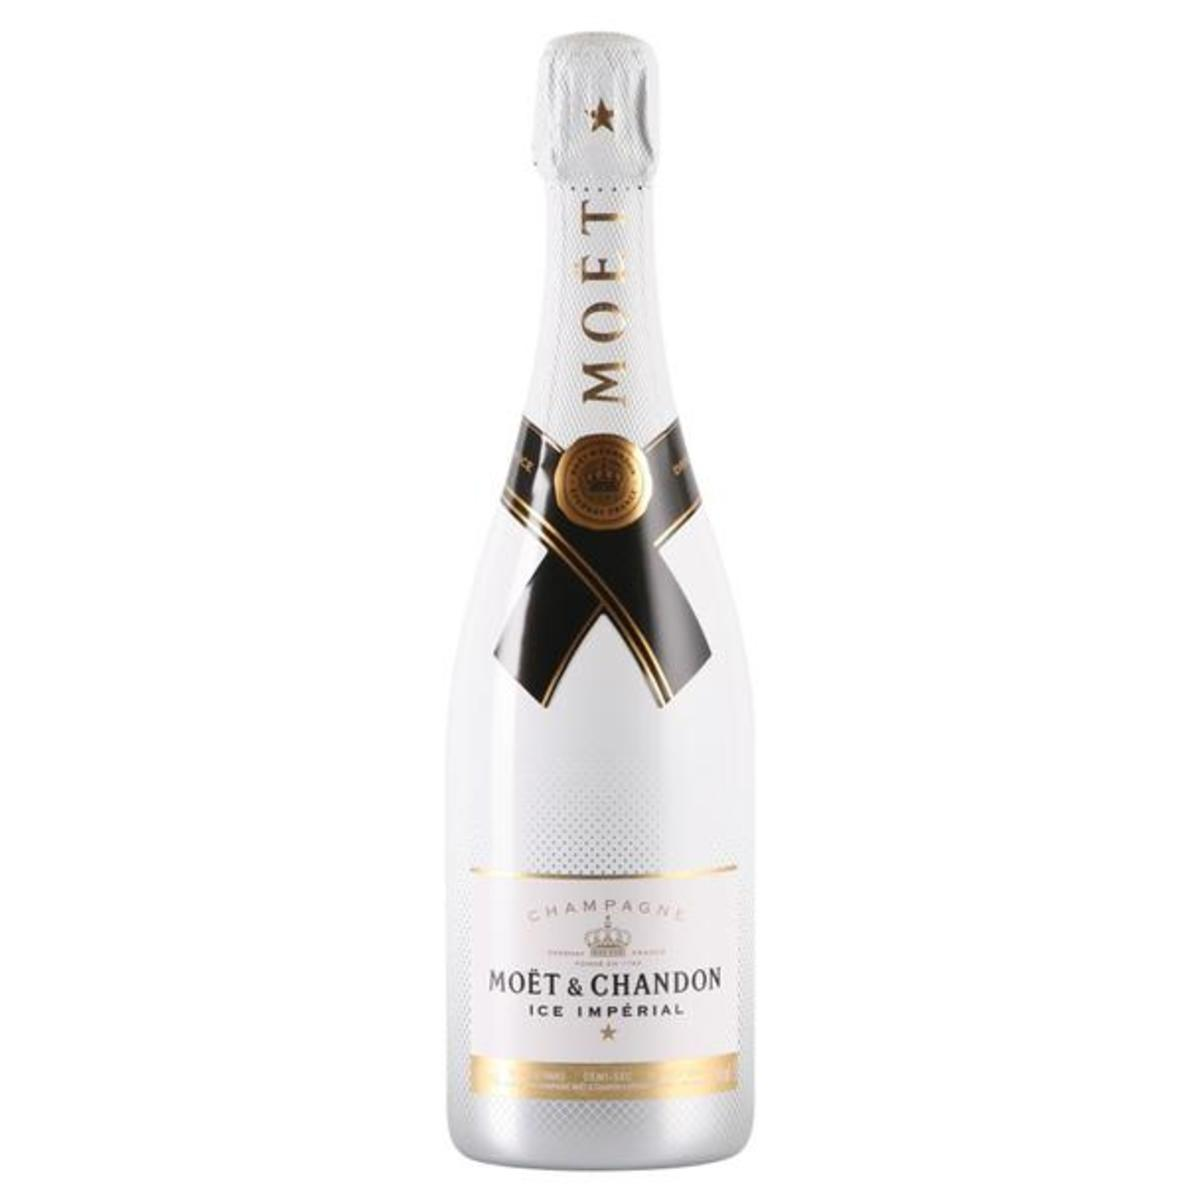 Direct from France - Moet & Chandon Ice Imperial Champagne 750ml